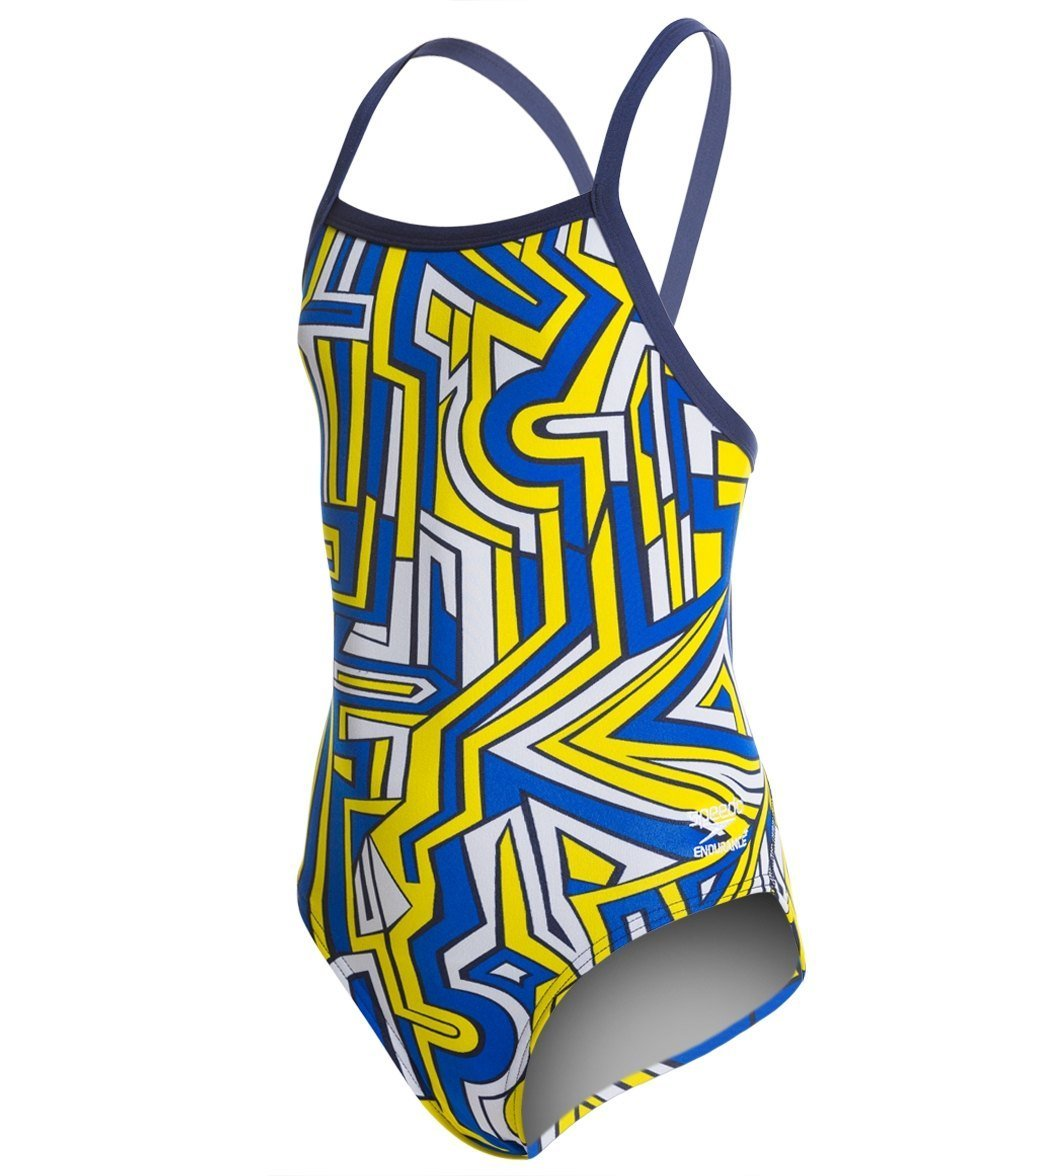 Amazon.com : Speedo Big Girls Conquers All Fly Back Swimsuit : Sports & Outdoors